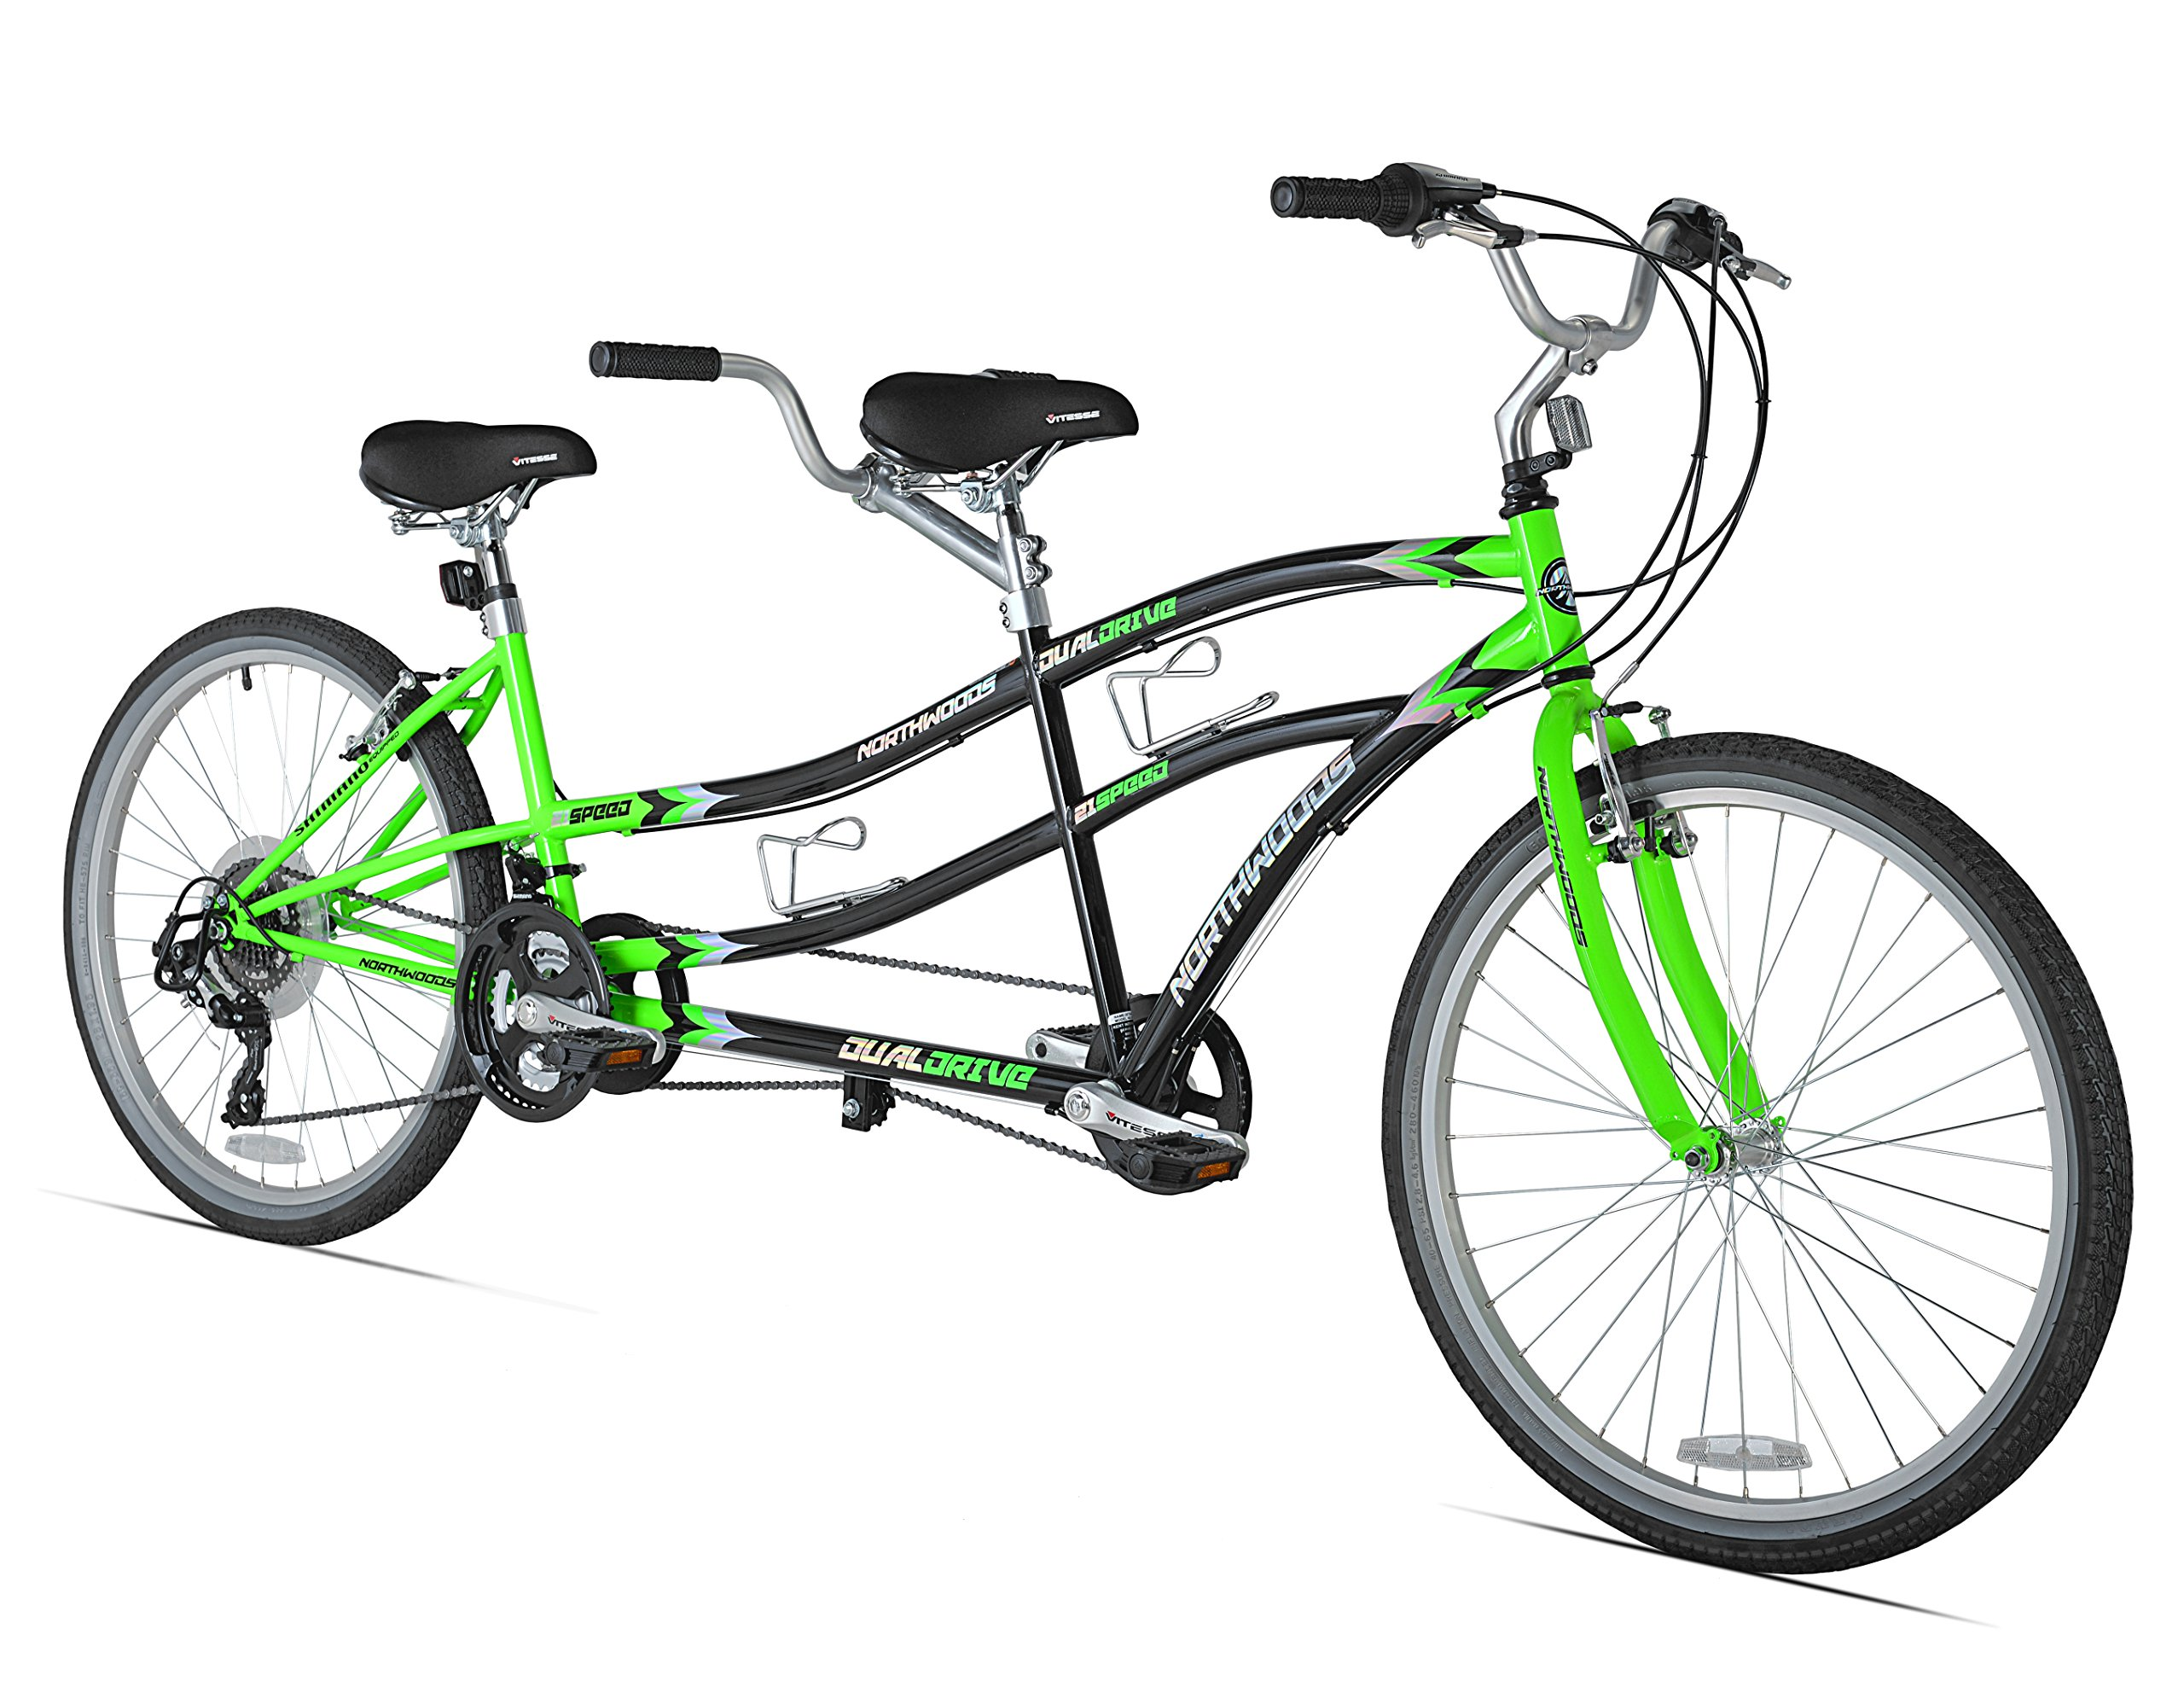 Northwoods Dual Drive Tandem Bike, 26-Inch, Green/Black by KENT